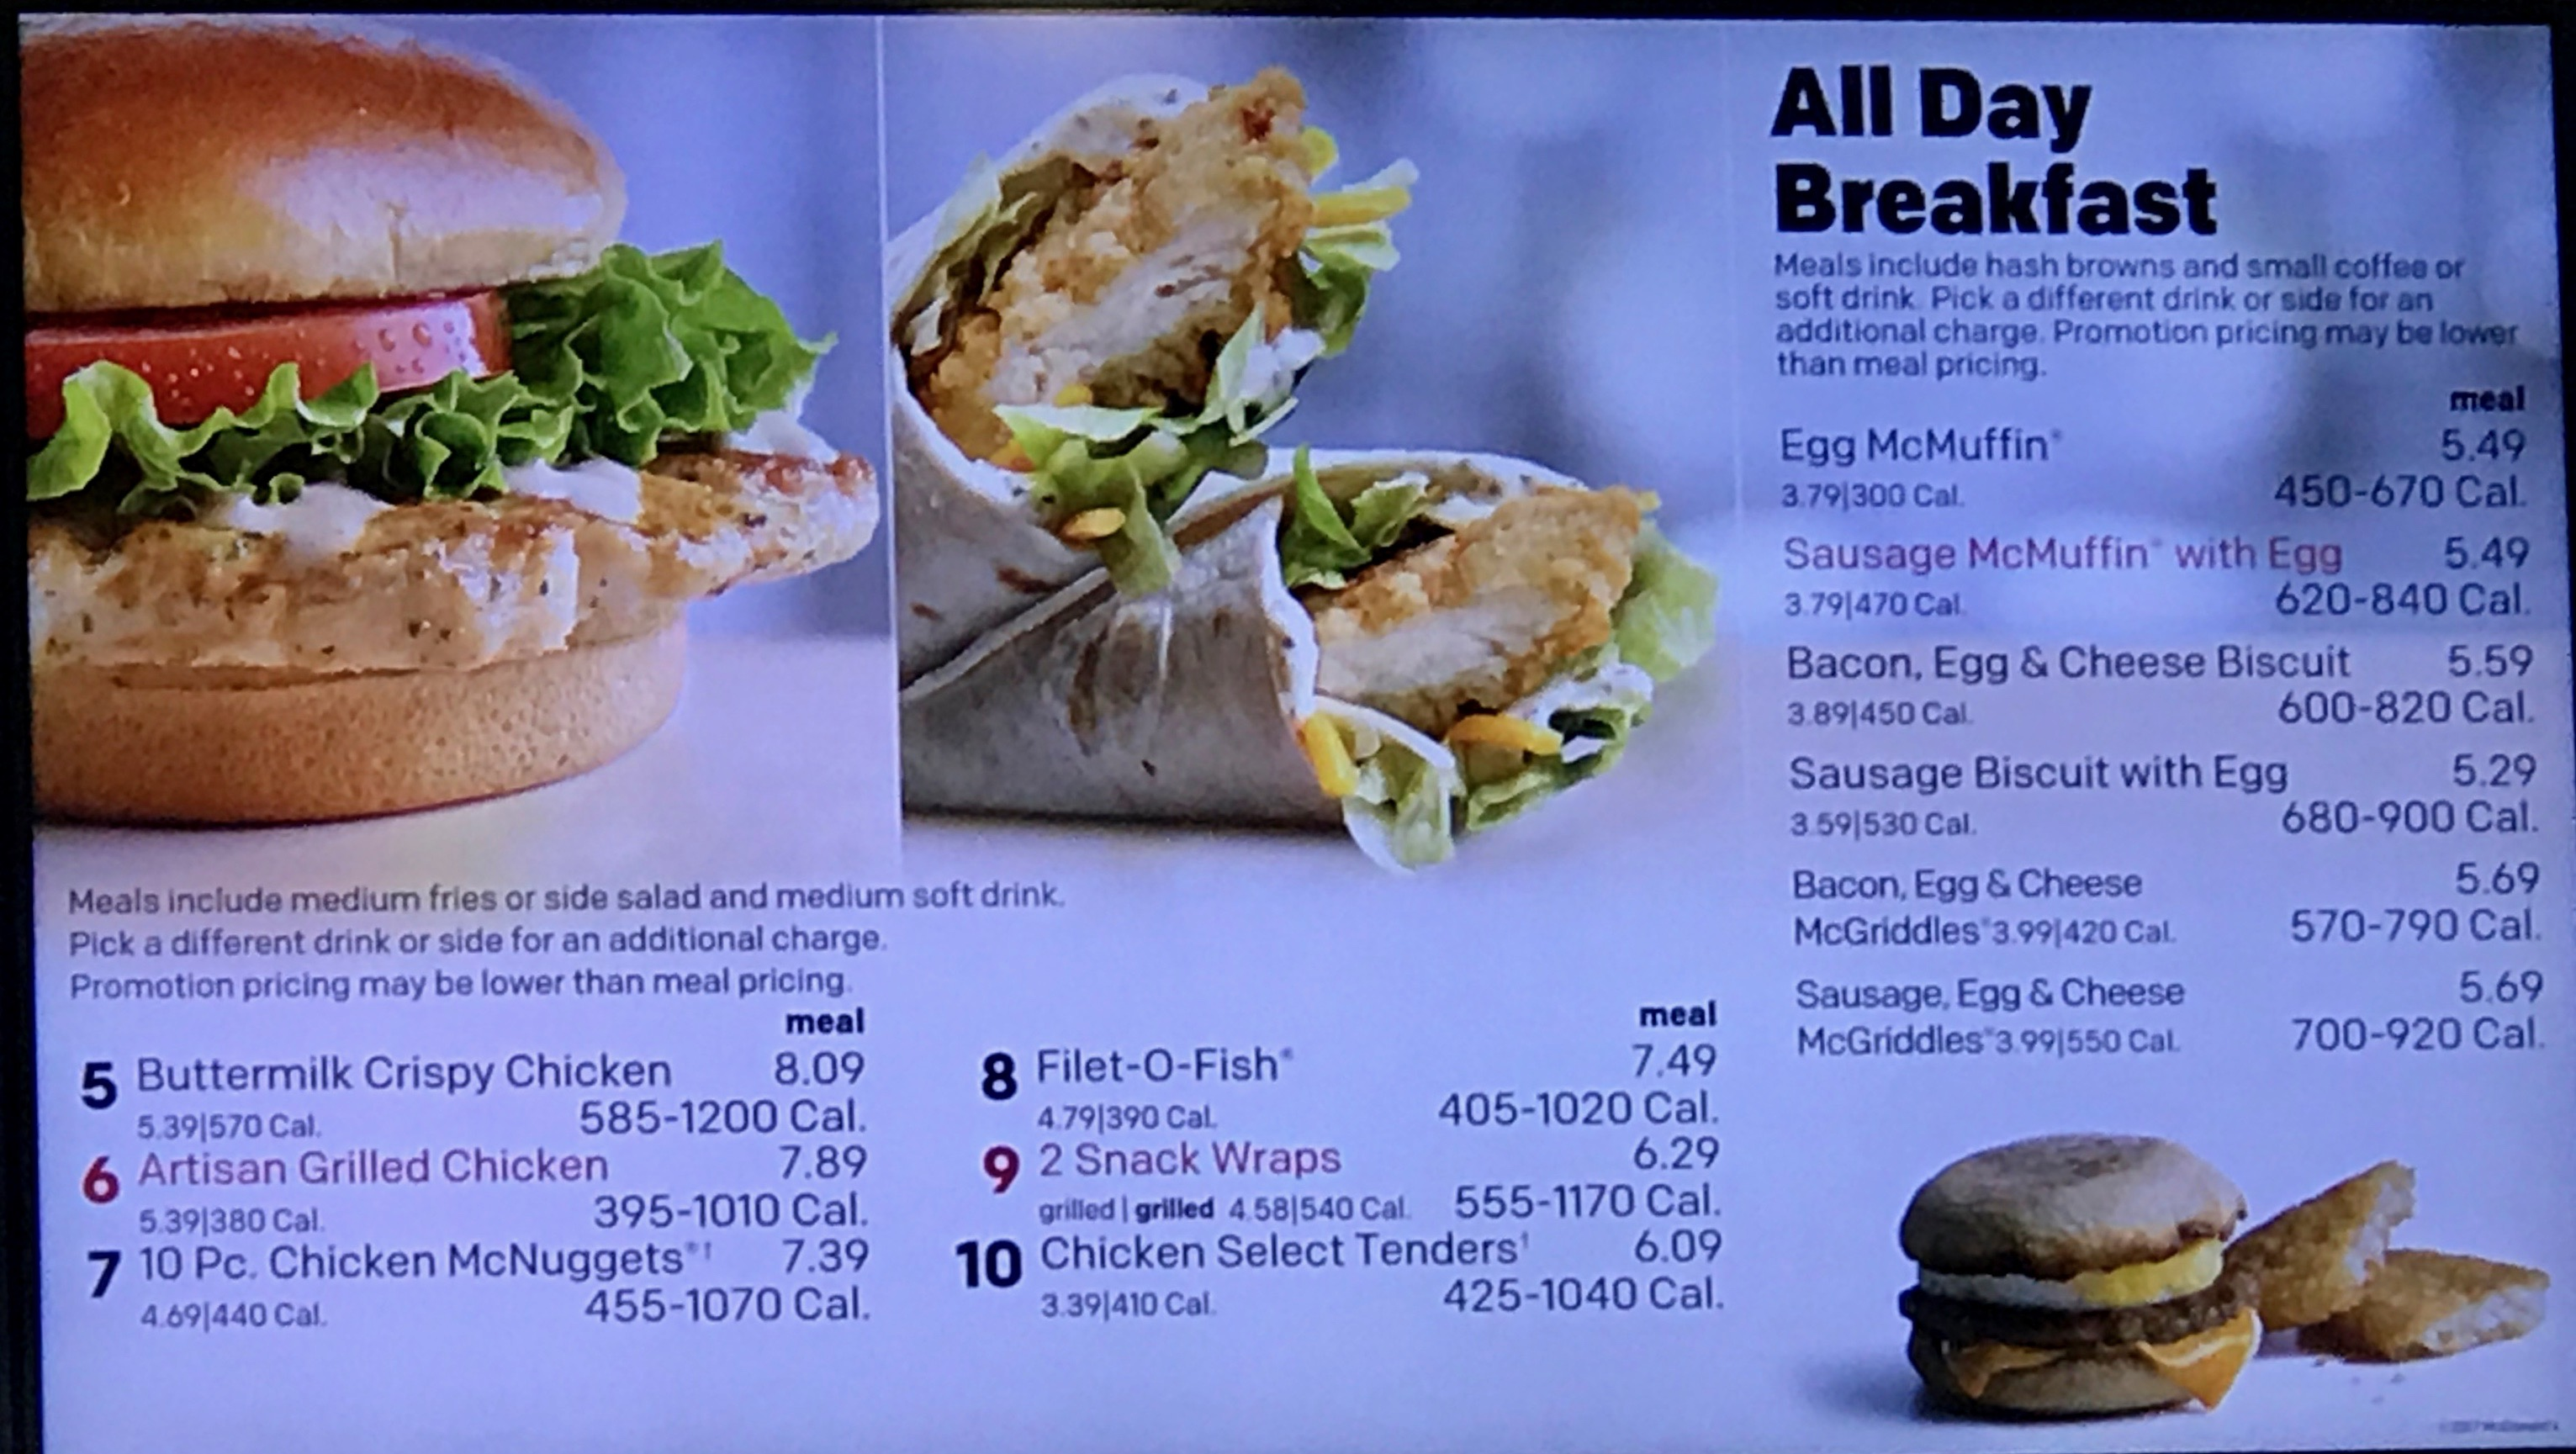 McDonald's Breakfast All Day Menu